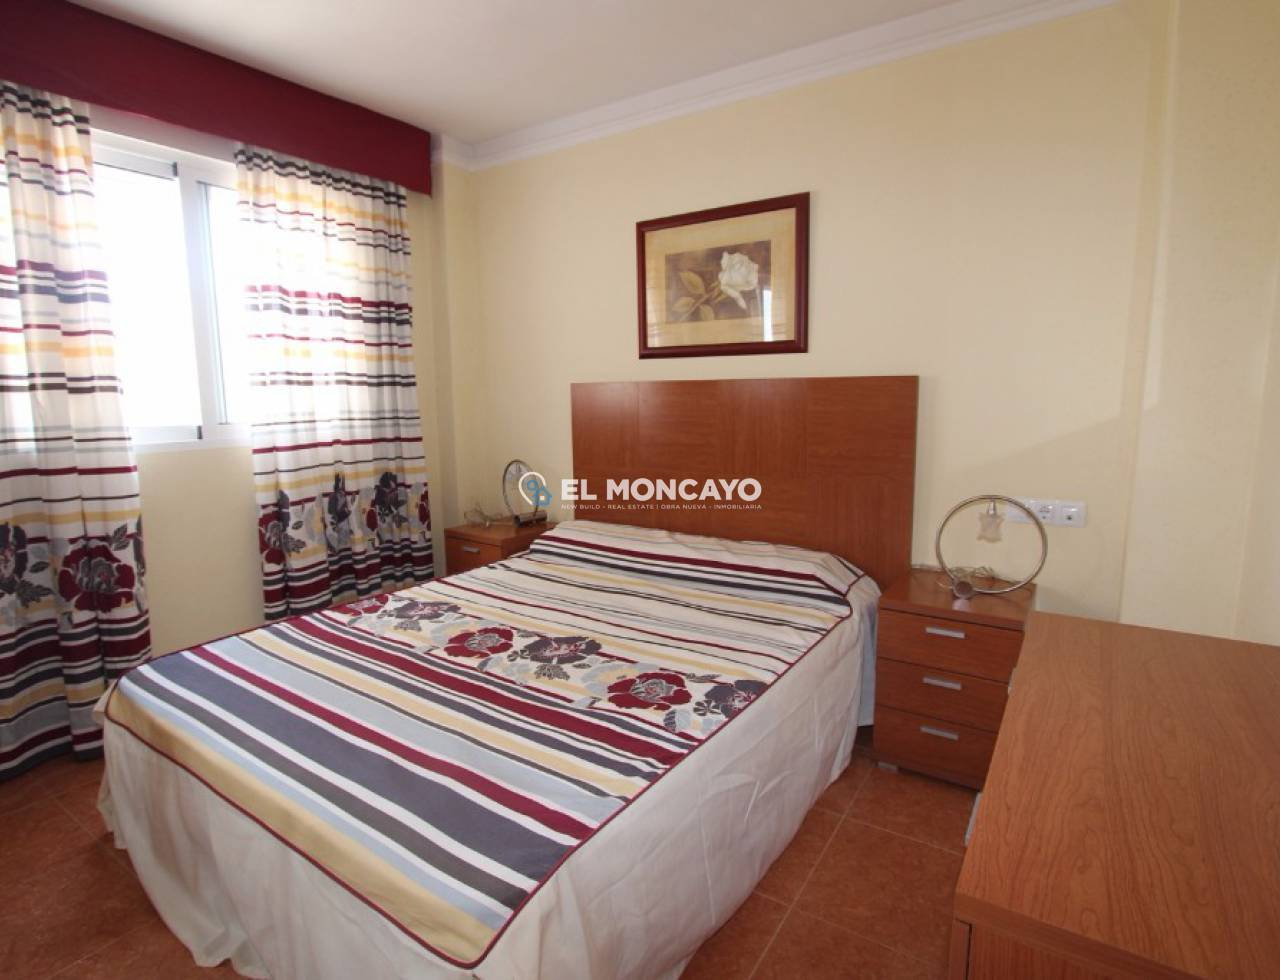 Verkoop - Appartement - Guardamar del Segura - El Edén - Los Estaños